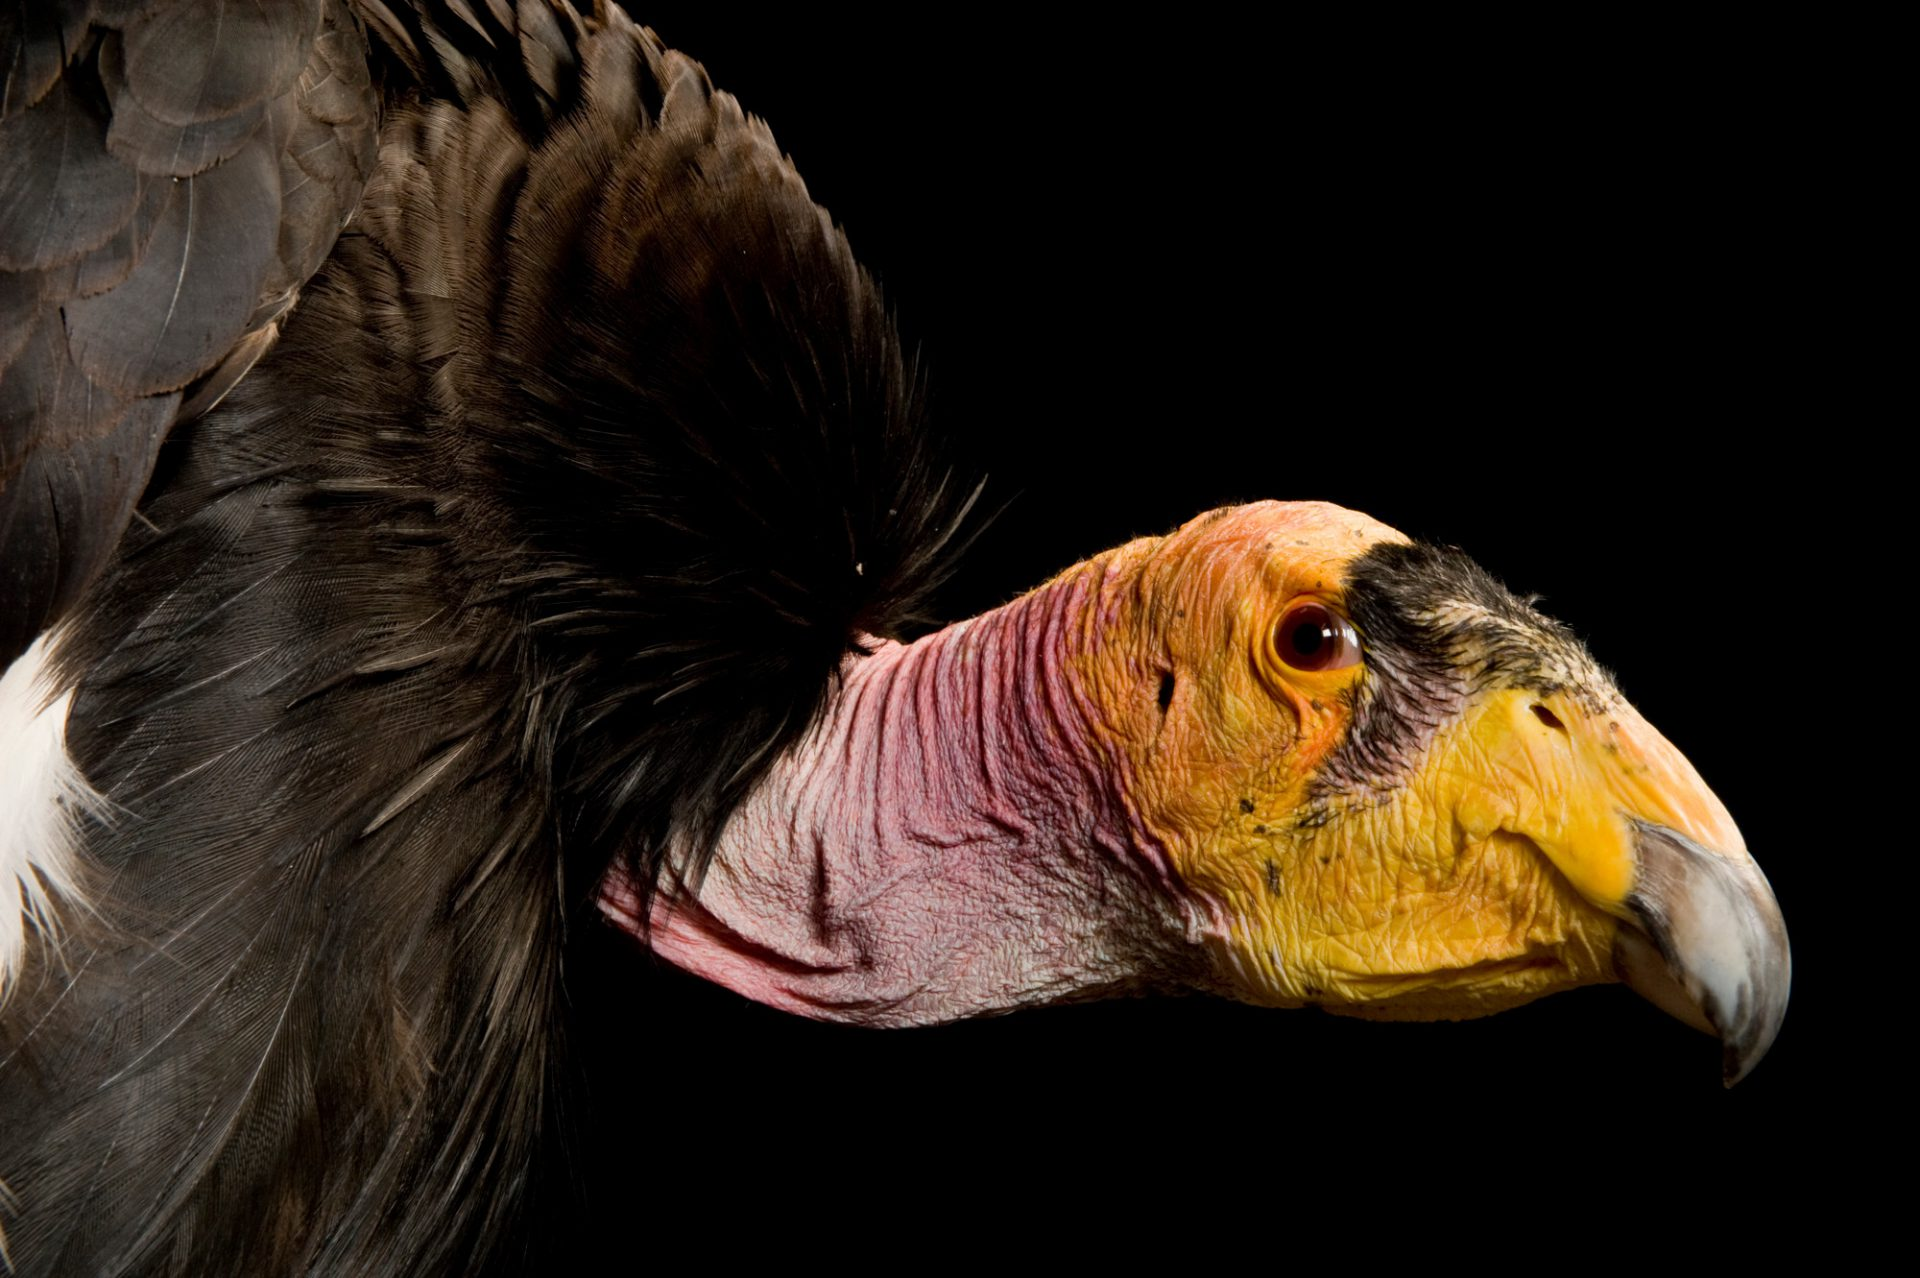 Photo: A critically endangered California condor, Gymnogyps californianus. was brought in after dislocating its wing, most likely after flying into the Navajo Bridge in N. AZ.